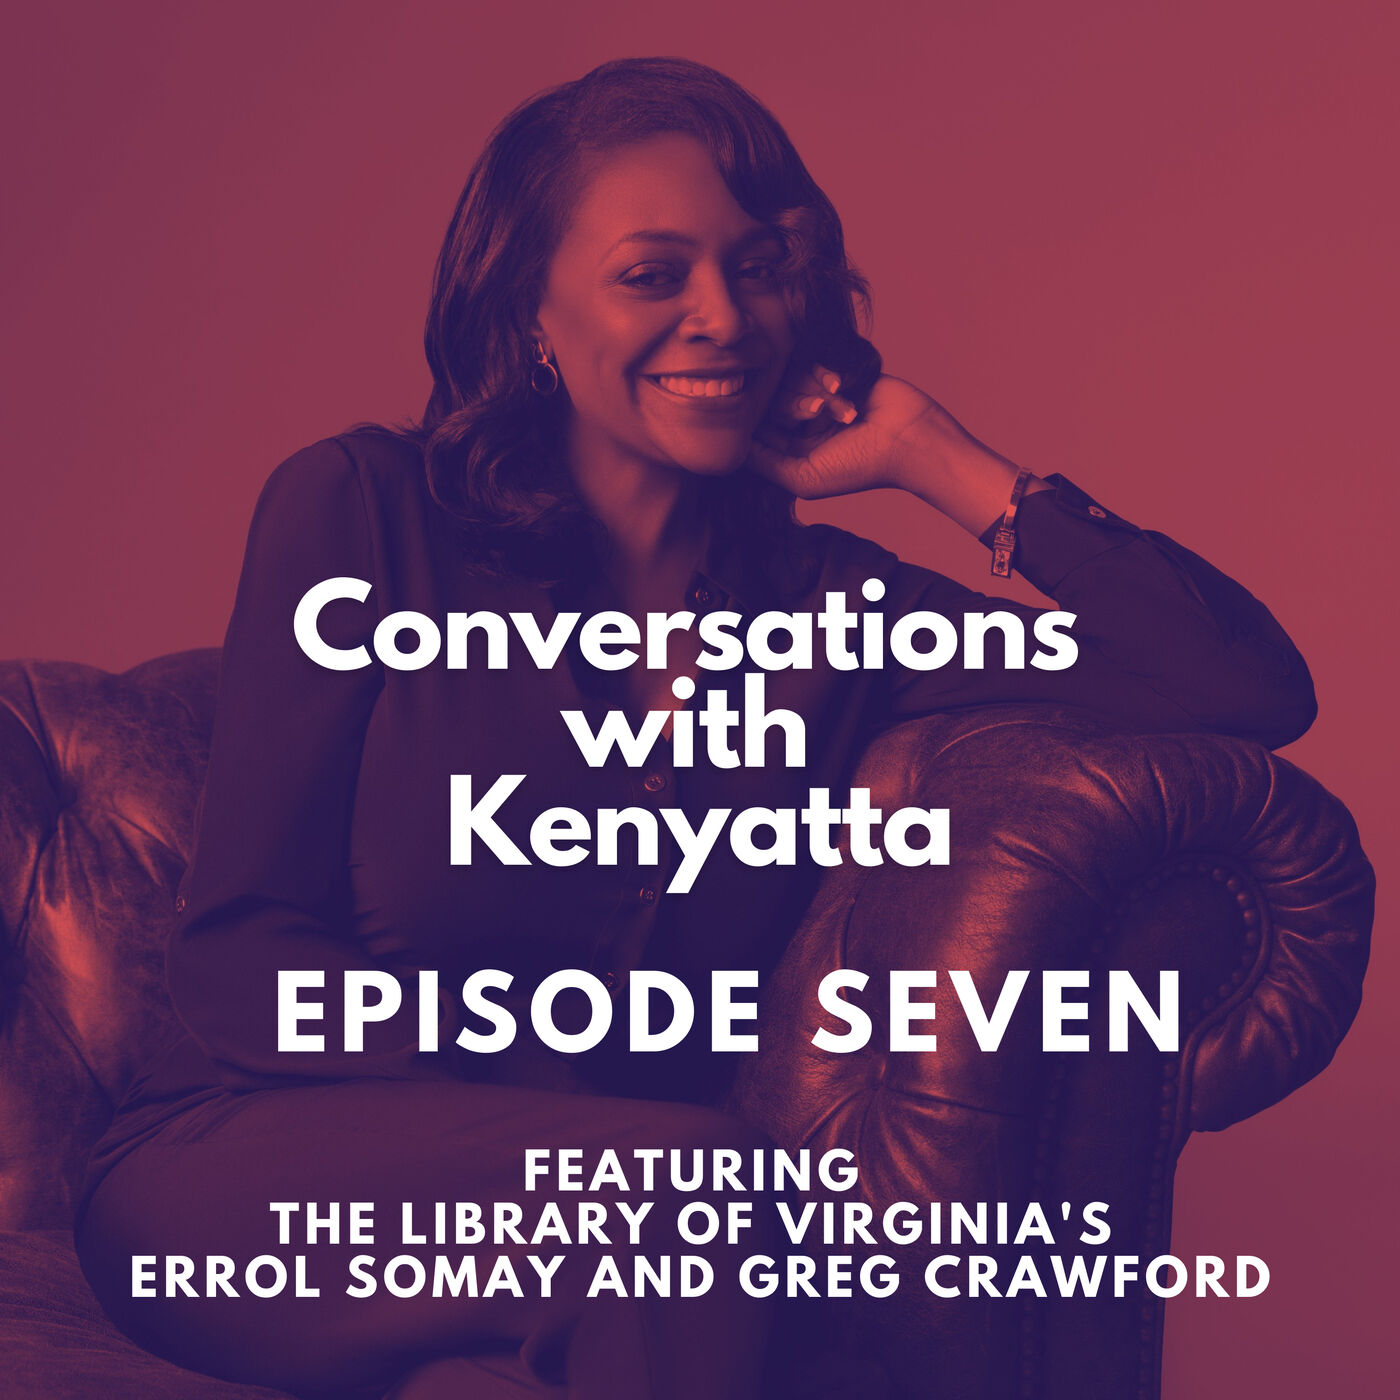 A Conversation with Errol Somay and Greg Crawford of the Library of Virginia